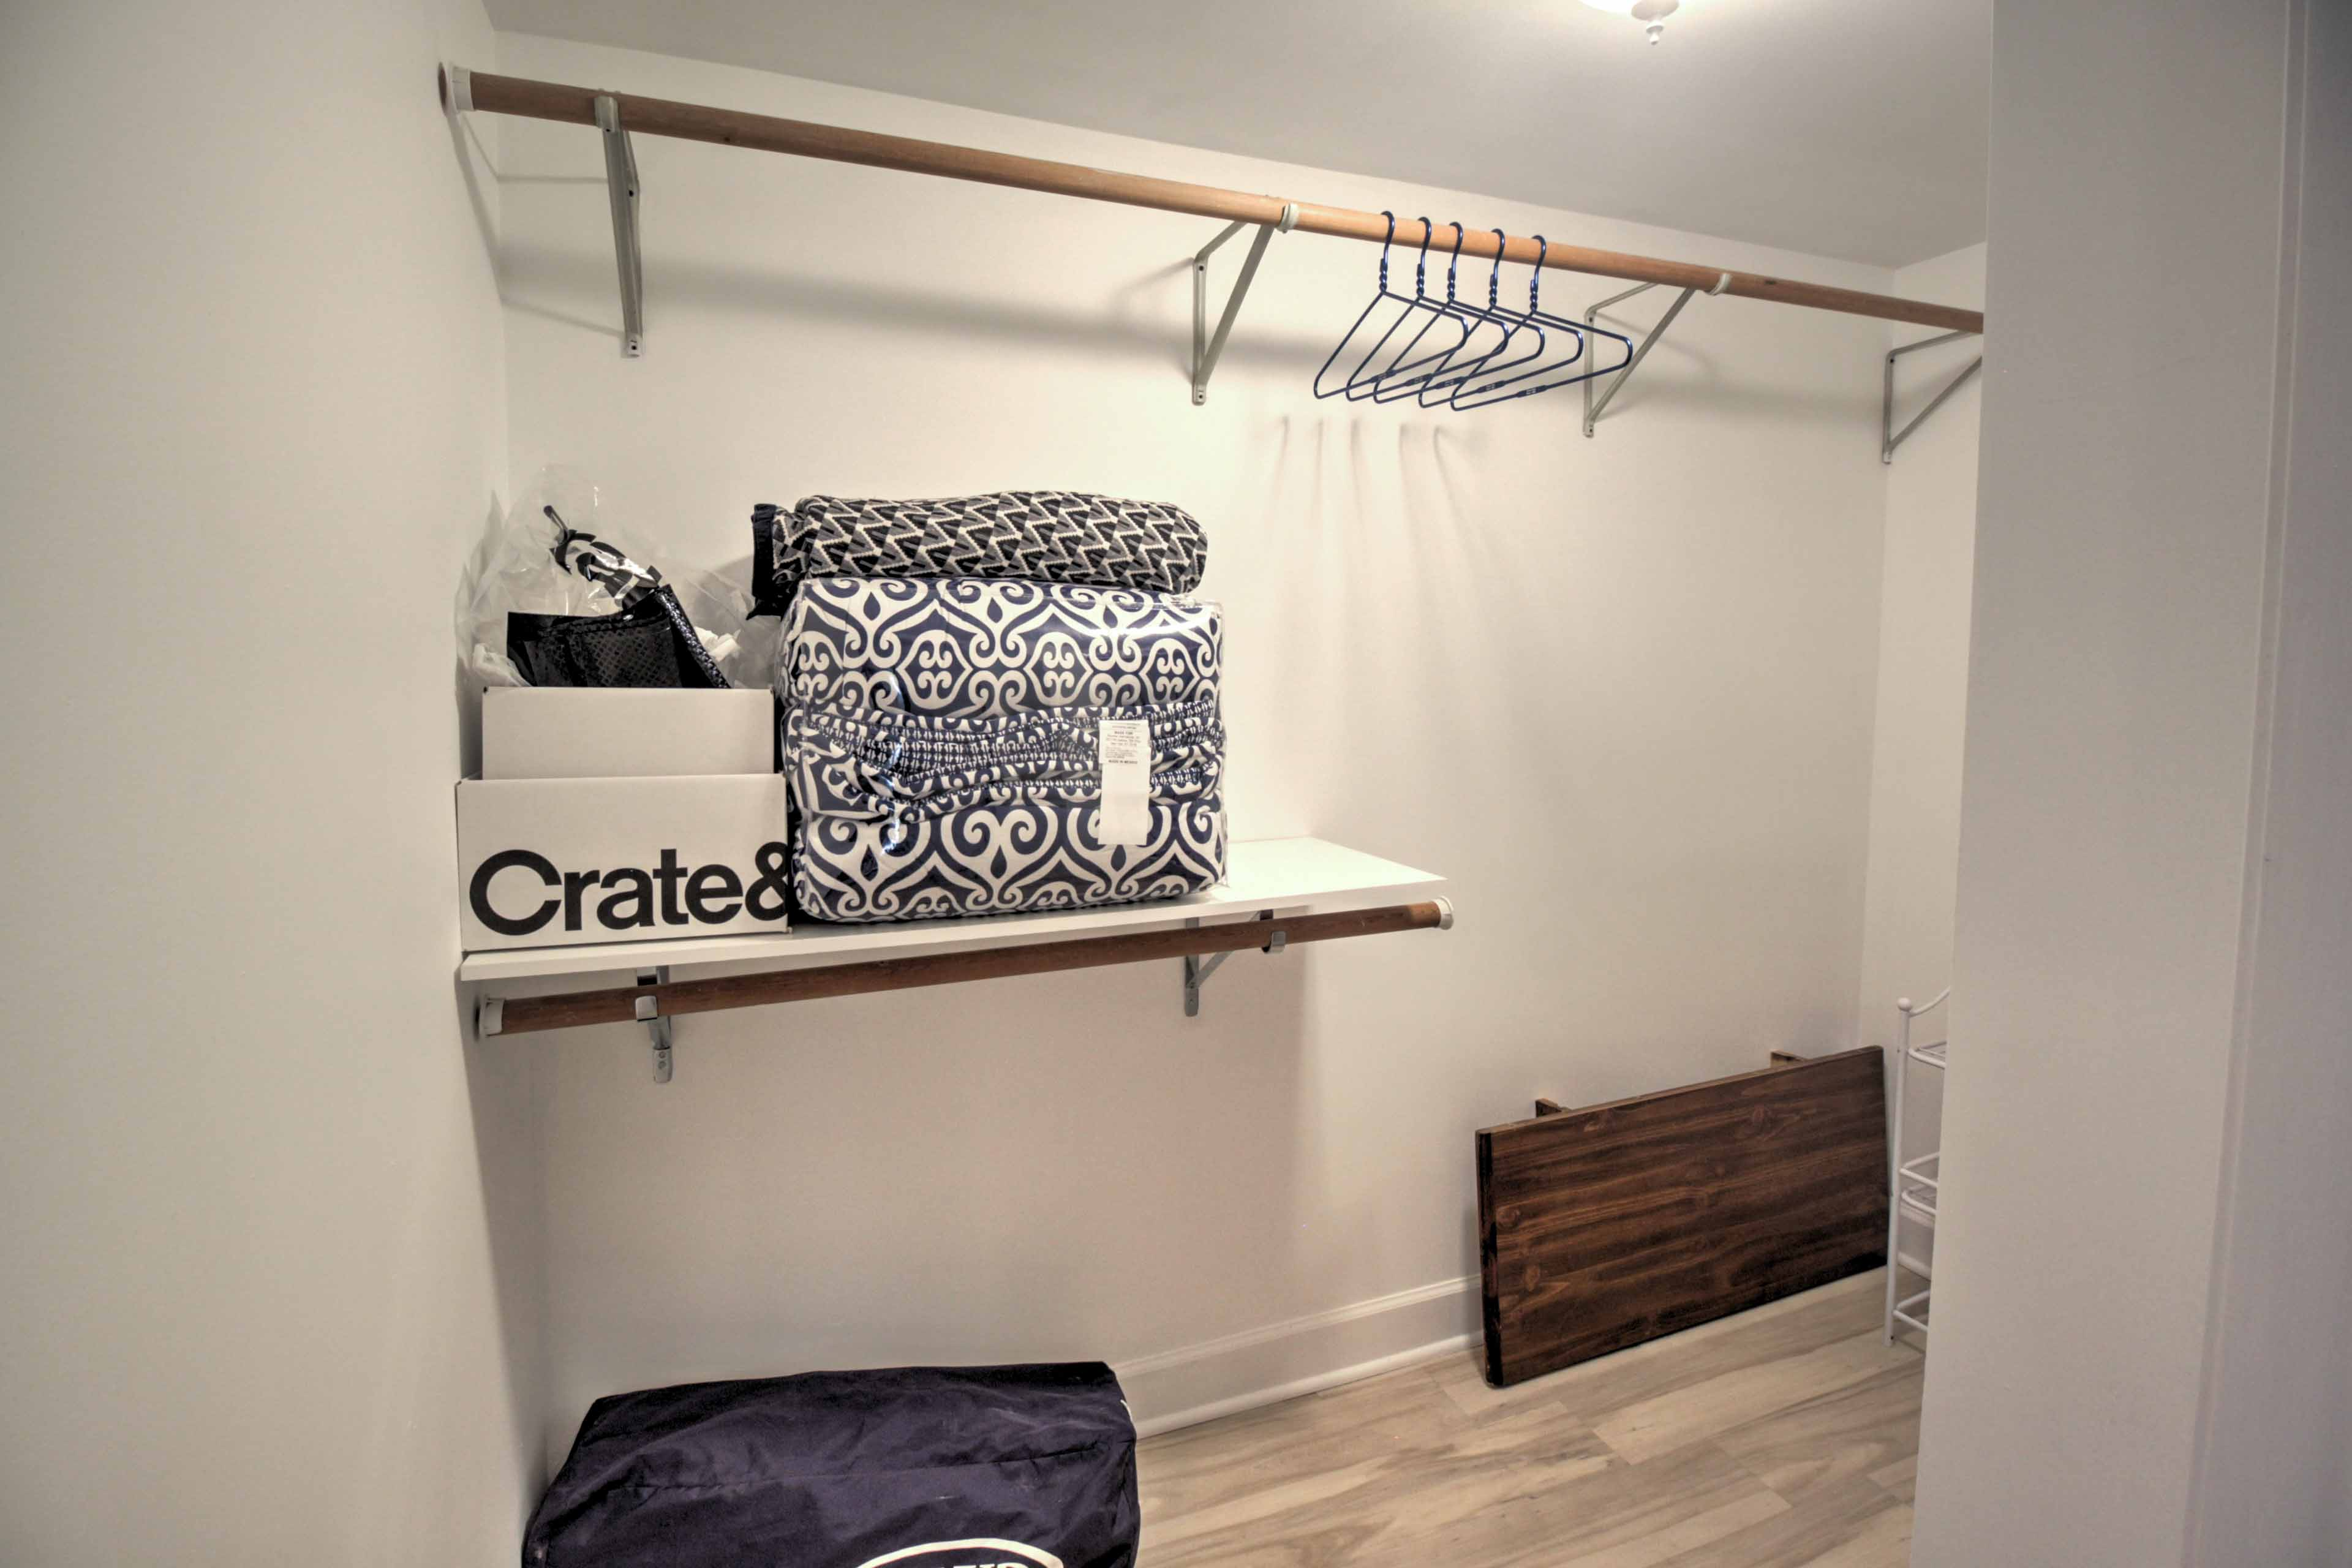 There's plenty of storage space in the closet!